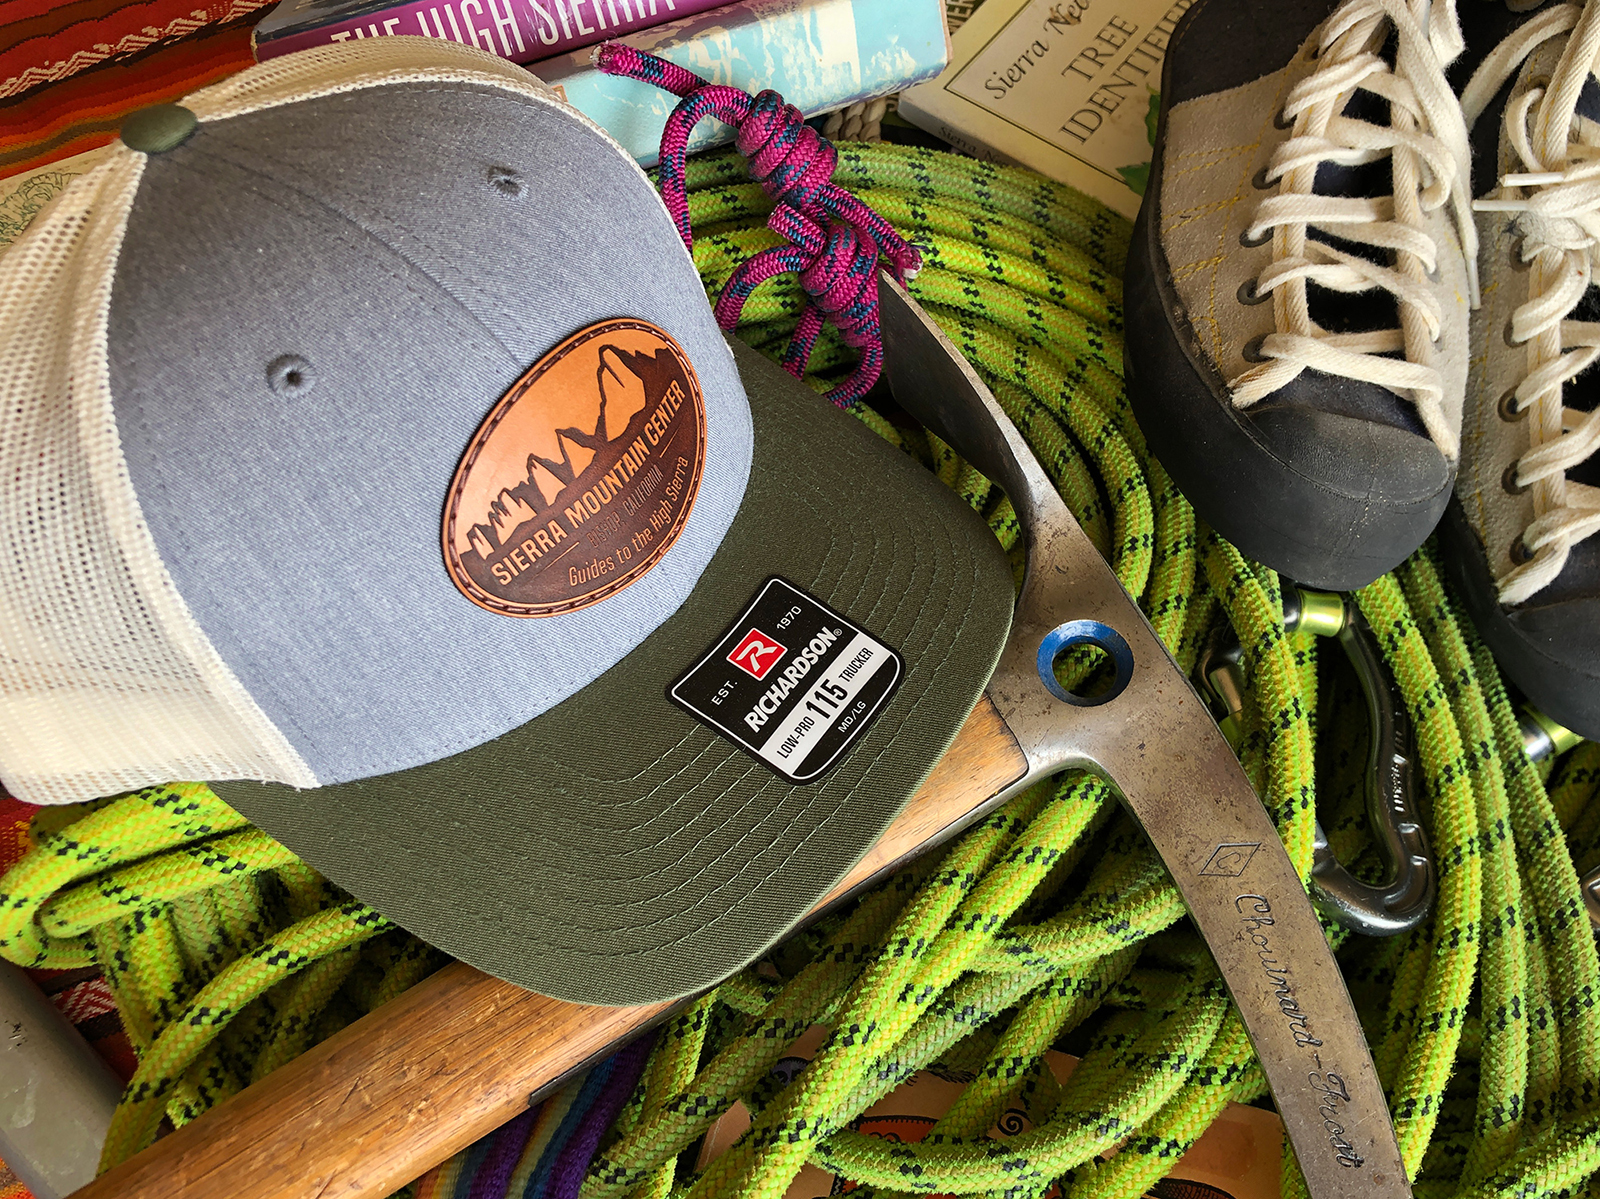 Pile of new and vintage climbing gear and Sierra Nevada books, trucker hat on top